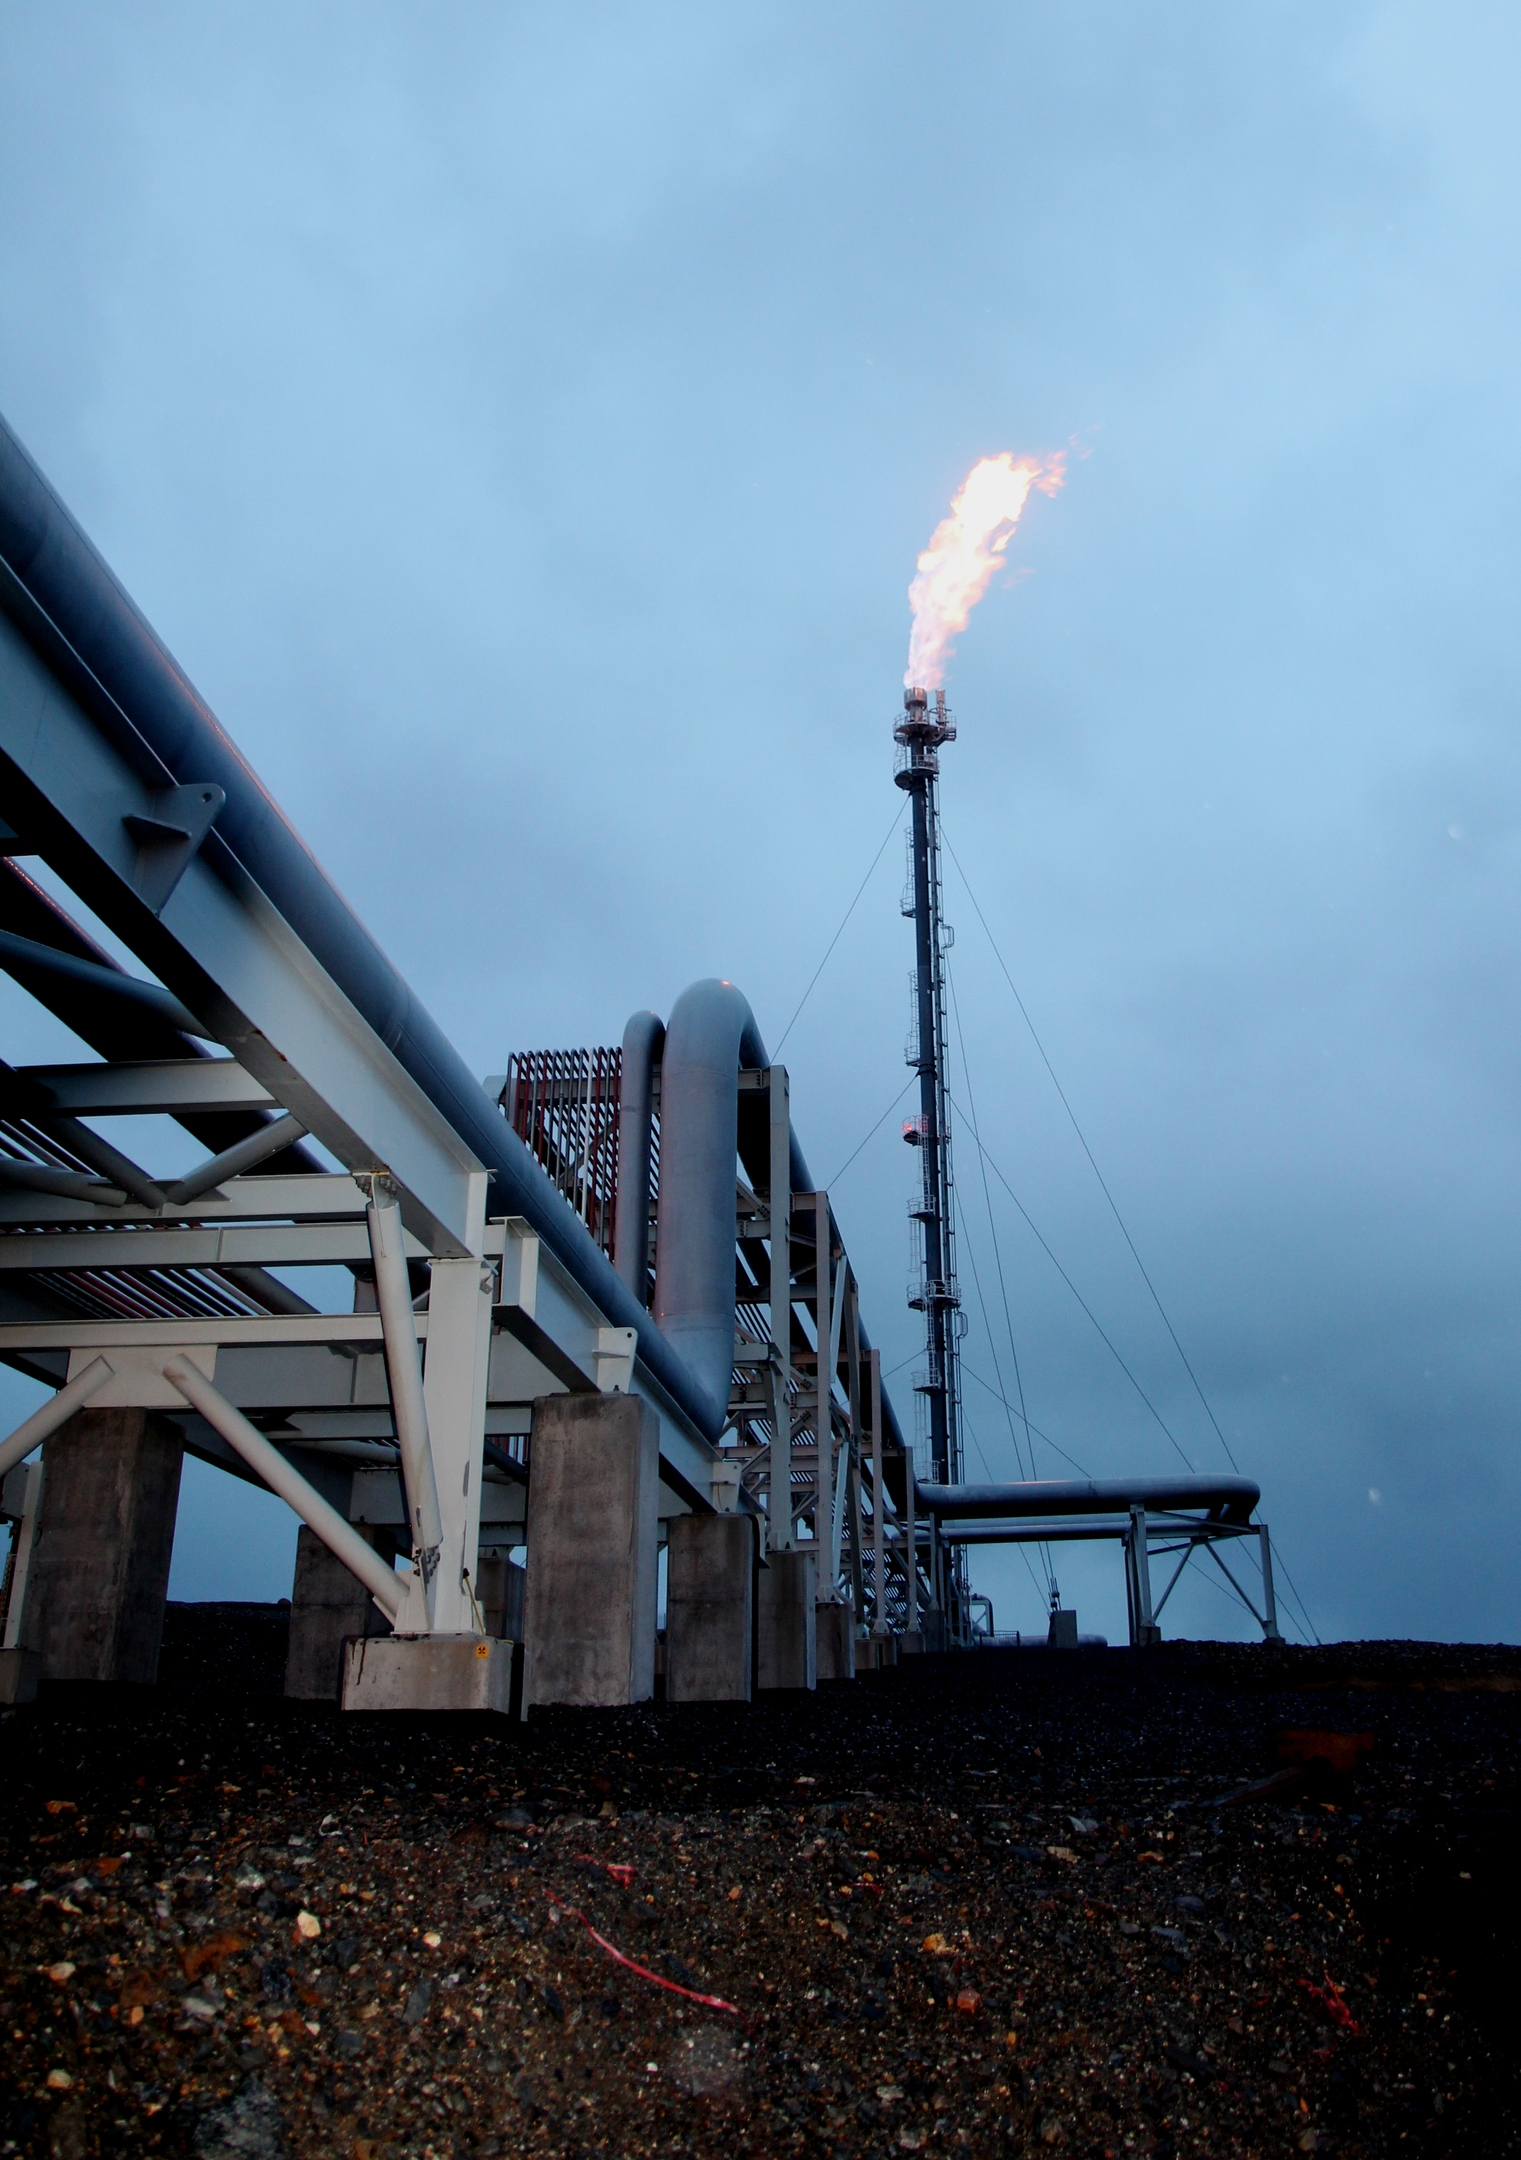 An oil rig flaring; Decarbonising oil and gas is one of the challenges to be addressed by the TechX Ventures initiative.